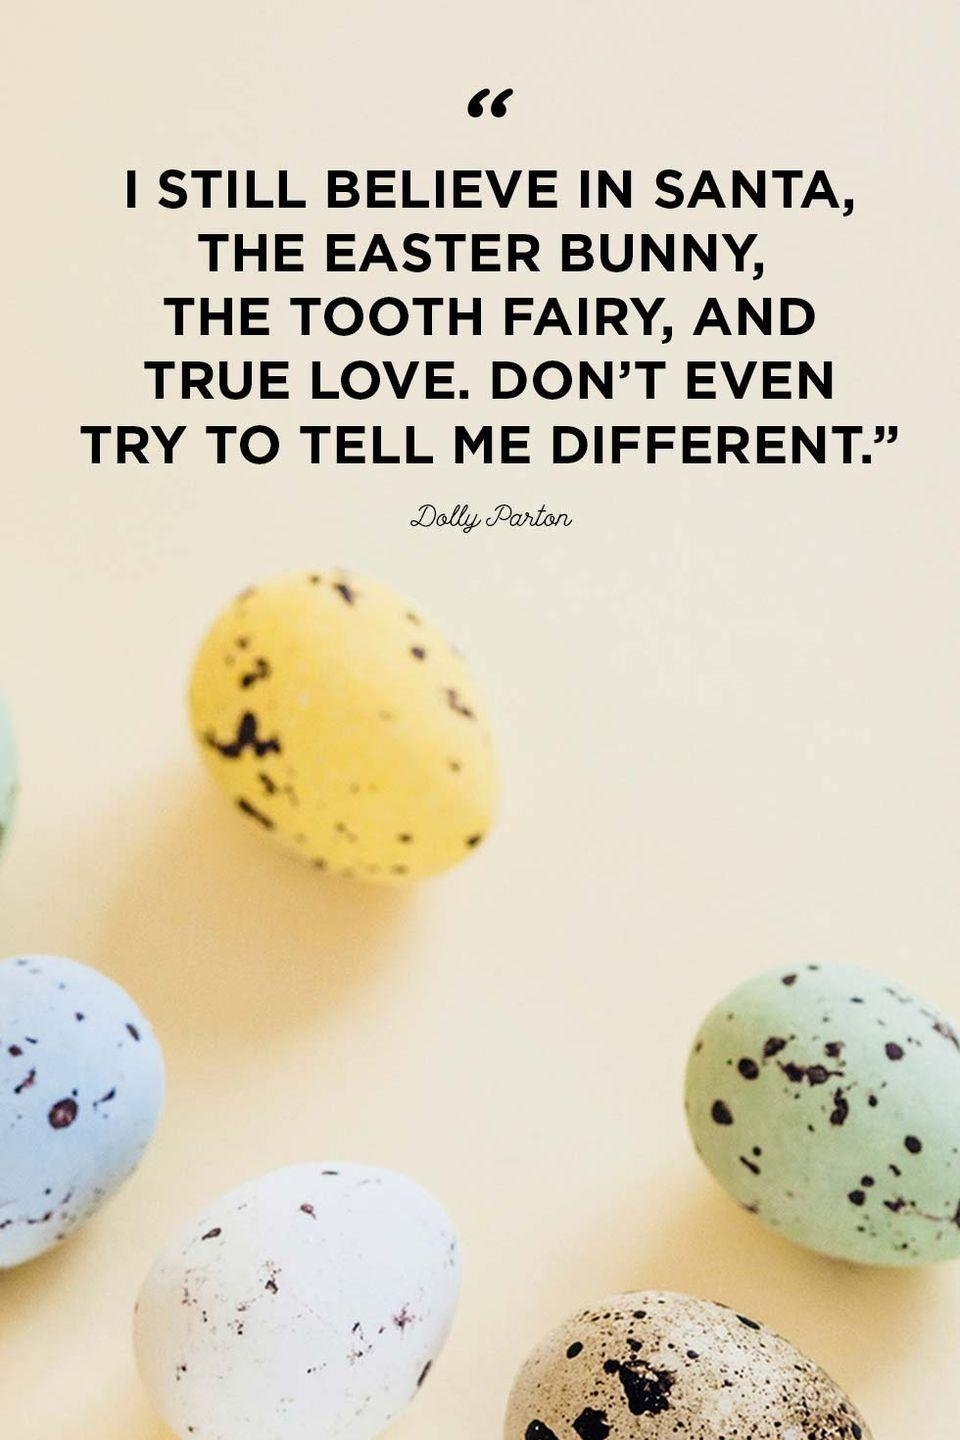 """<p>""""I still believe in Santa, the Easter Bunny, the Tooth Fairy, and true love. Don't even try to tell me different.""""</p>"""